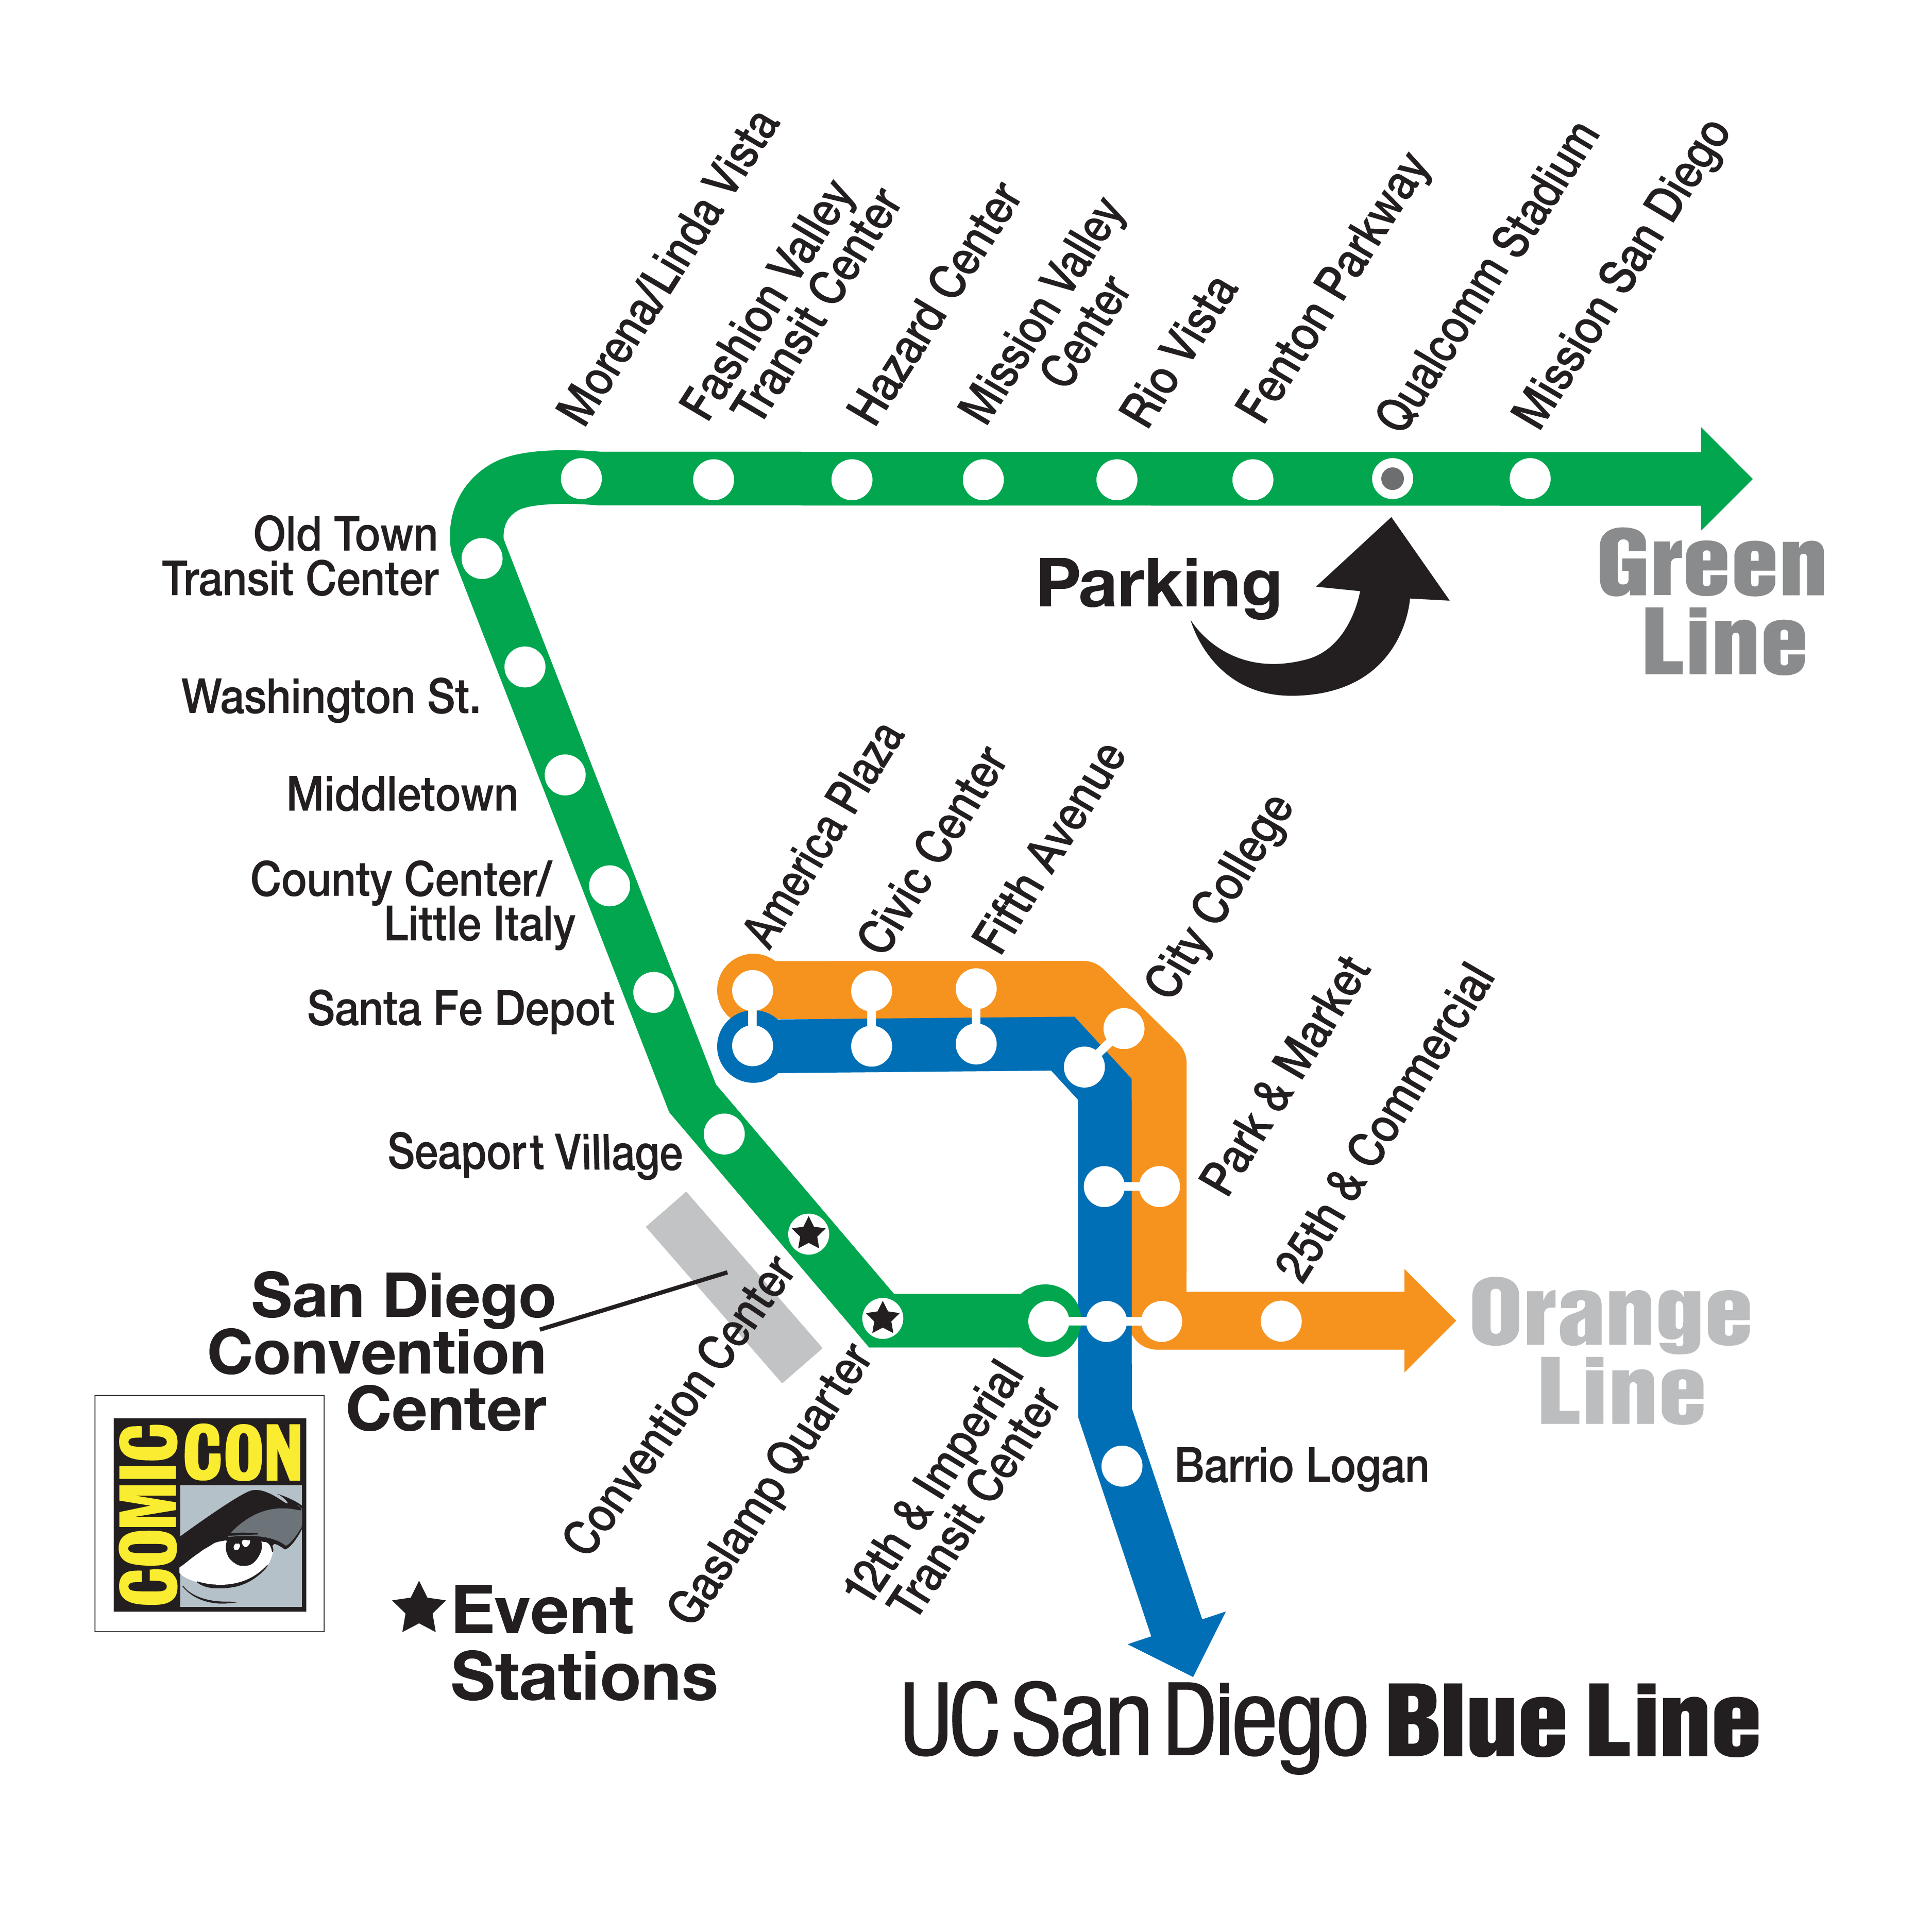 Comic Con Trolley Map Comic Con Pinterest Comics Comic con